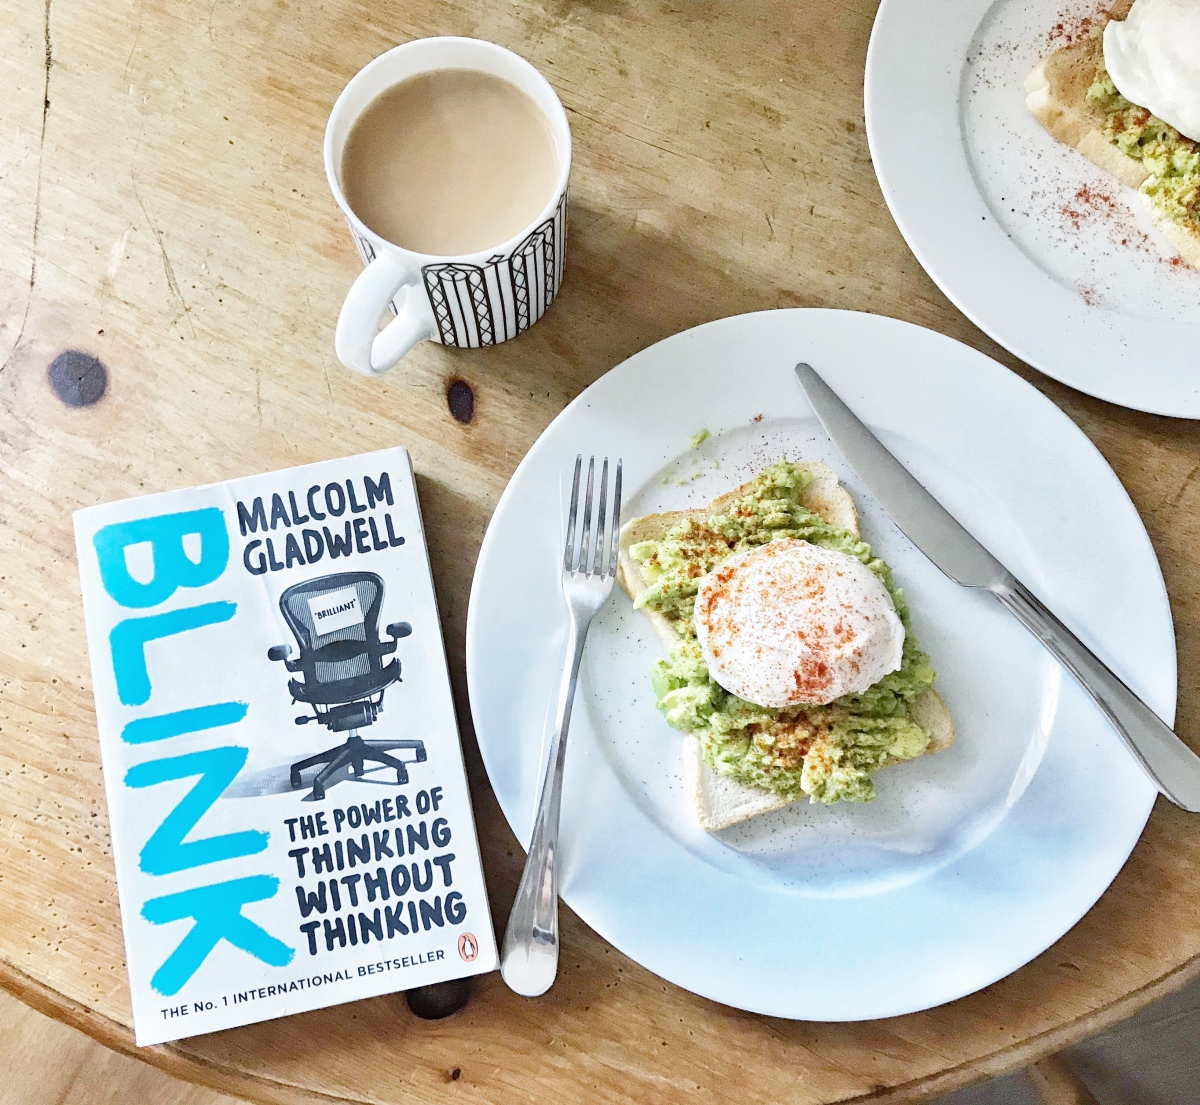 Book Review: 'Blink' by Malcolm Gladwell - Blink and you'll miss it